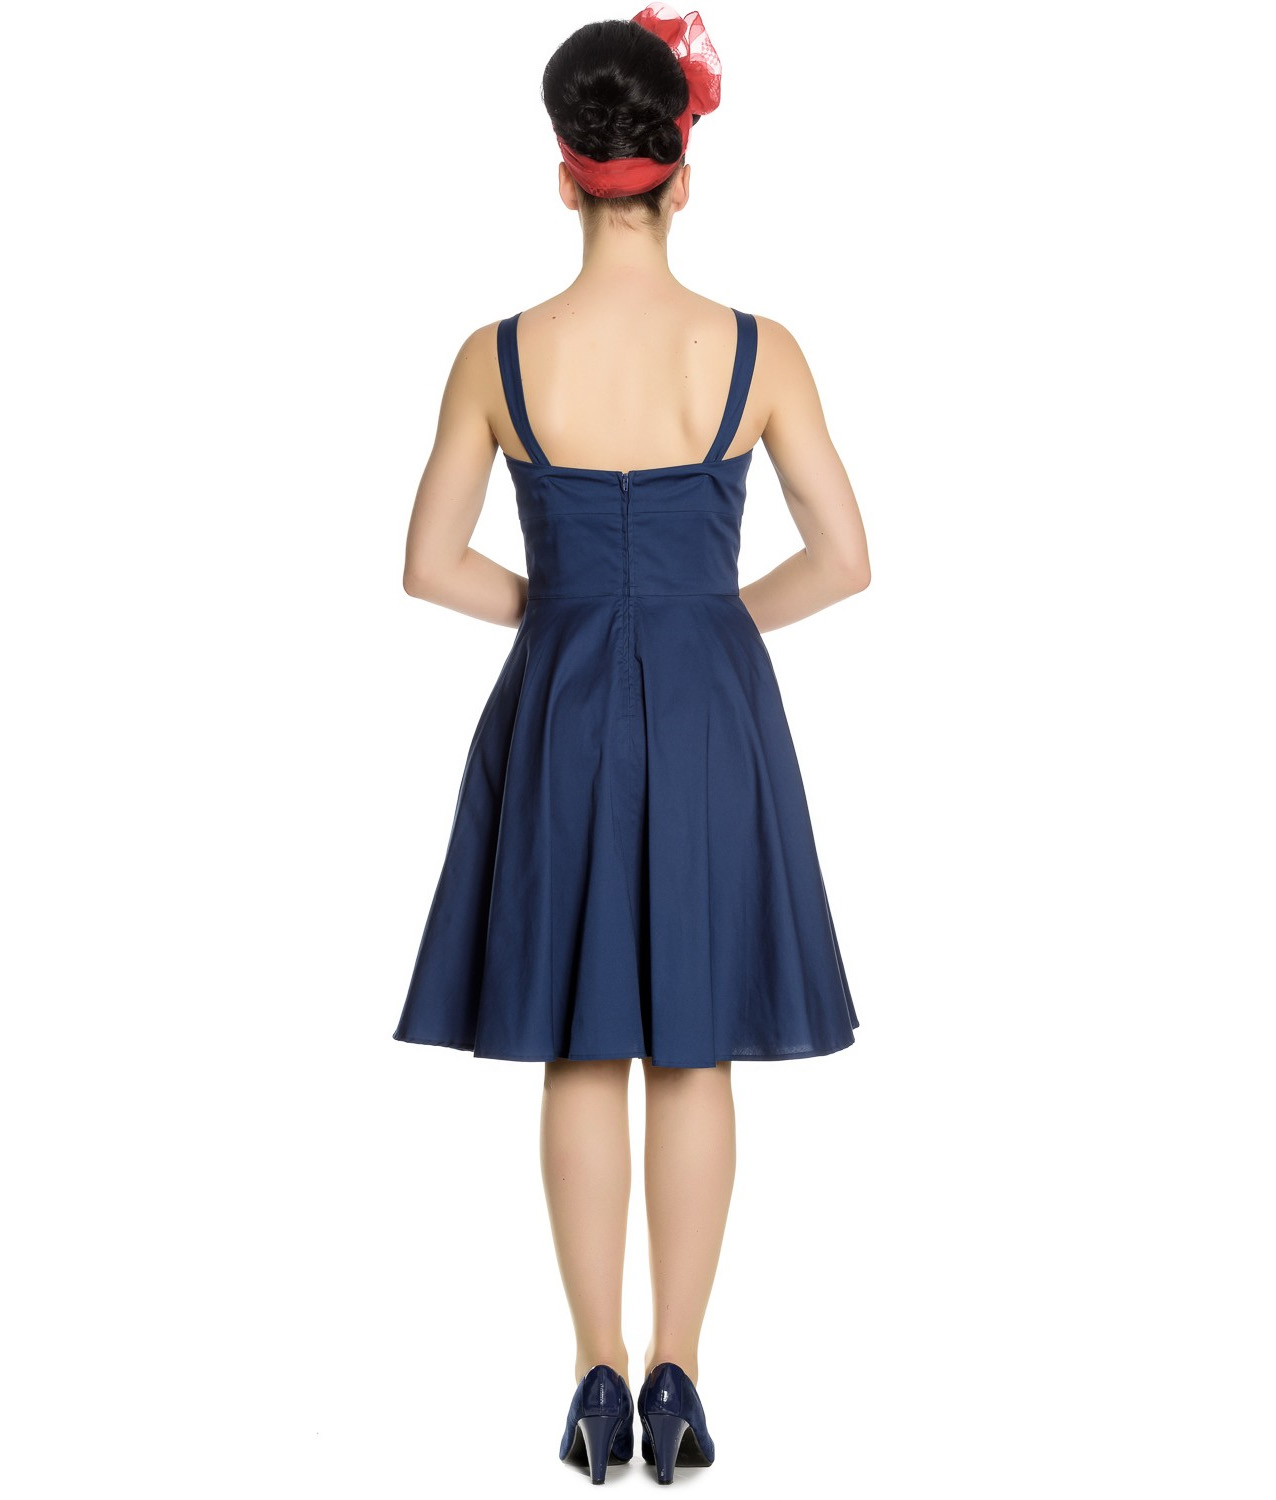 Hell-Bunny-Vintage-50s-Pin-Up-Dress-Navy-Blue-SELA-Nautical-Anchors-All-Sizes thumbnail 25